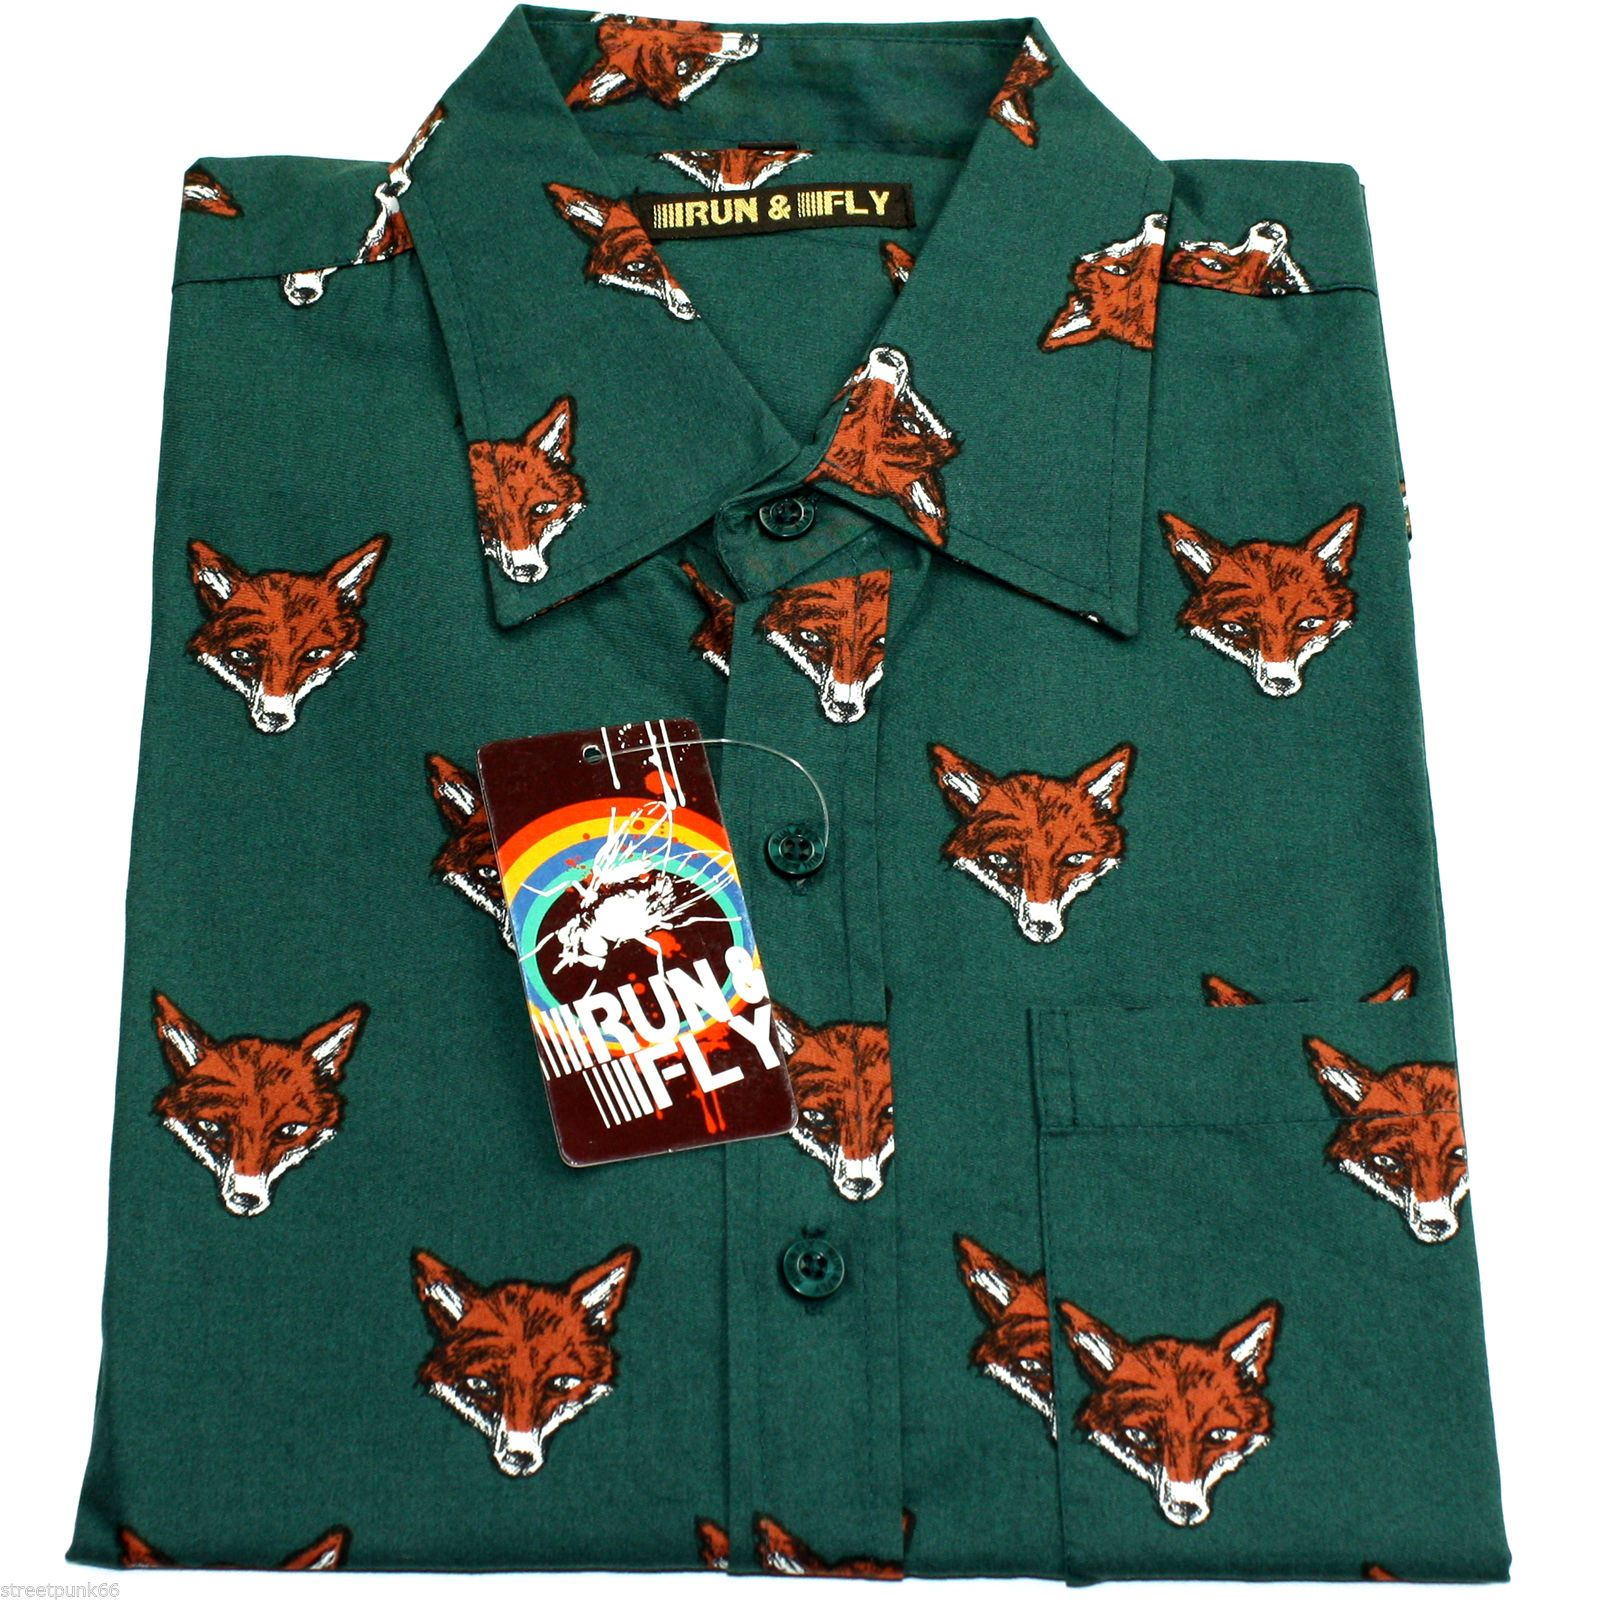 Retro Western Shirts For Men